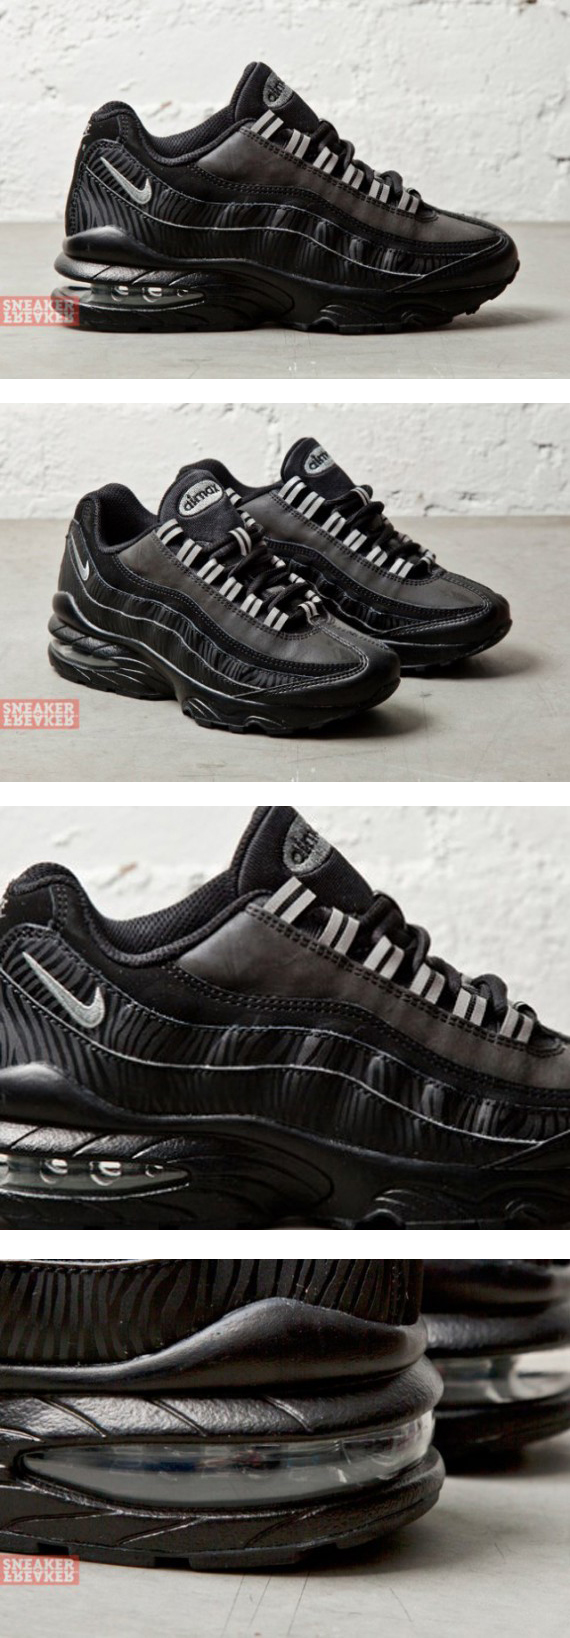 info for a3714 279d8 Nike Air Max 95 GS 'Black Zebra' | Young California